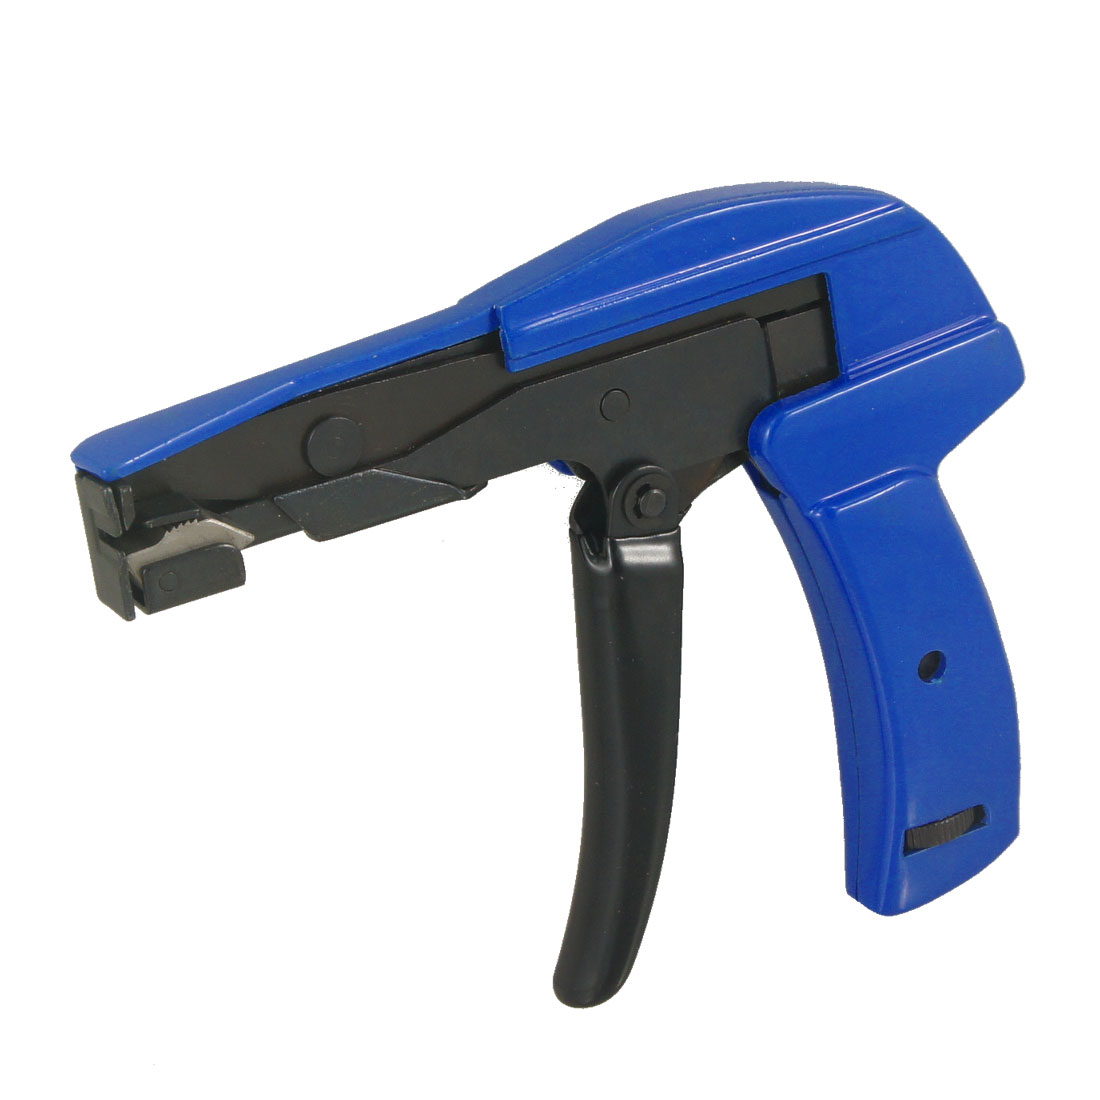 Blue Black Cable Wire Tie Gun Fastening Cutting Tool for Ties